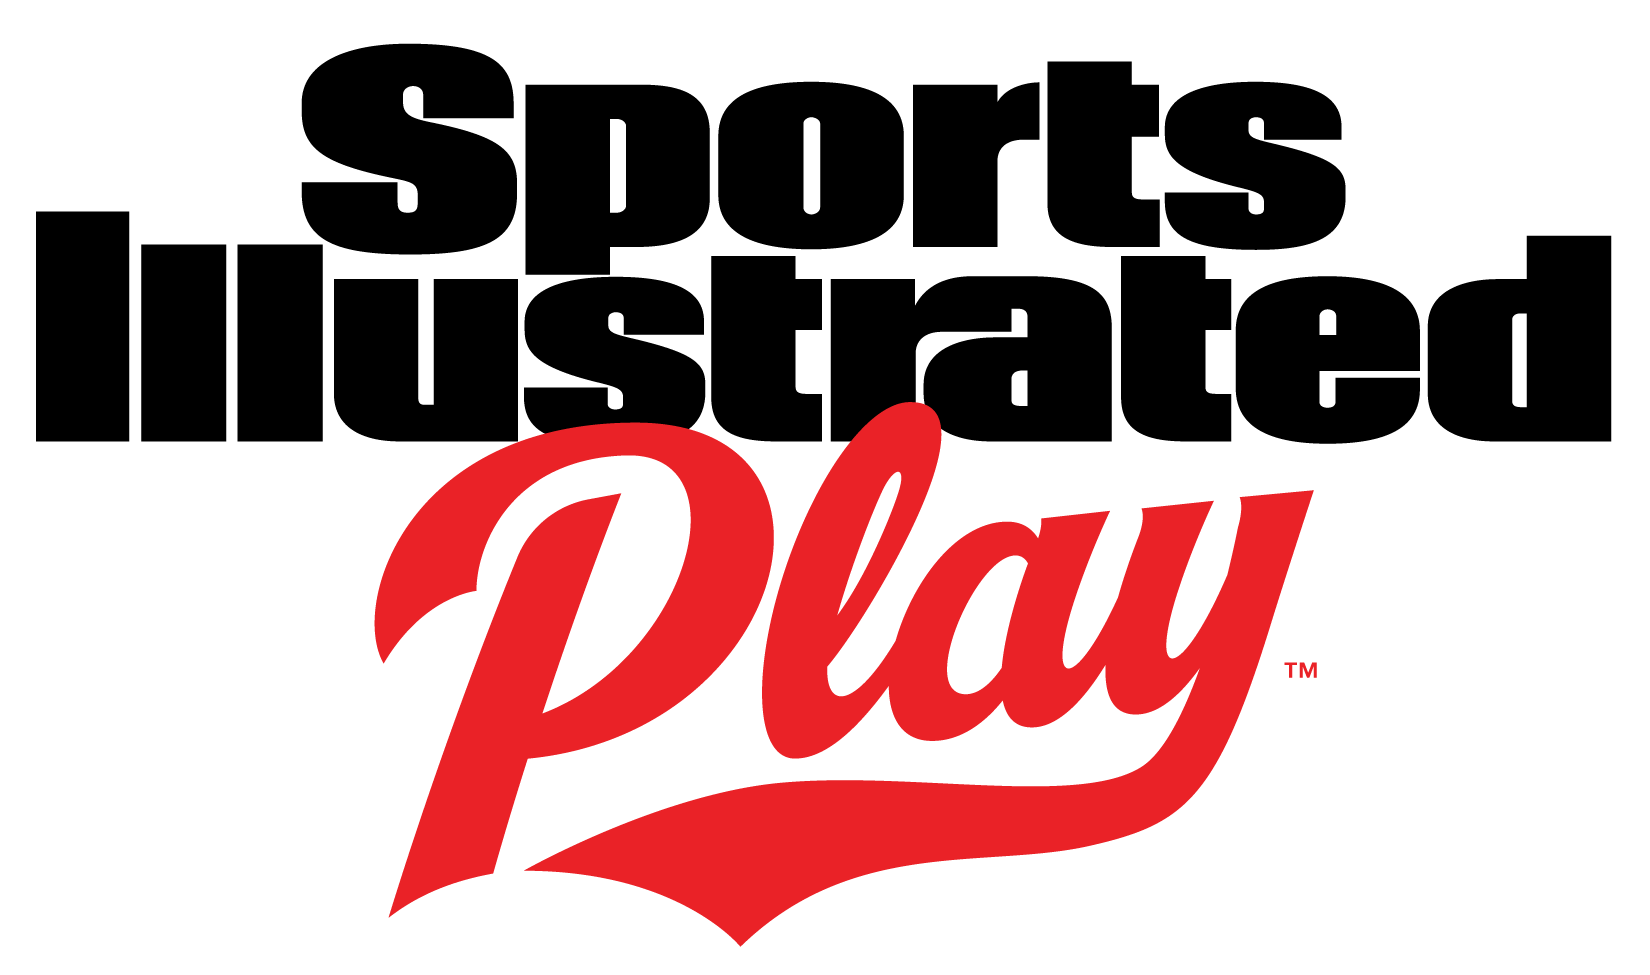 siplay_logo-01.png